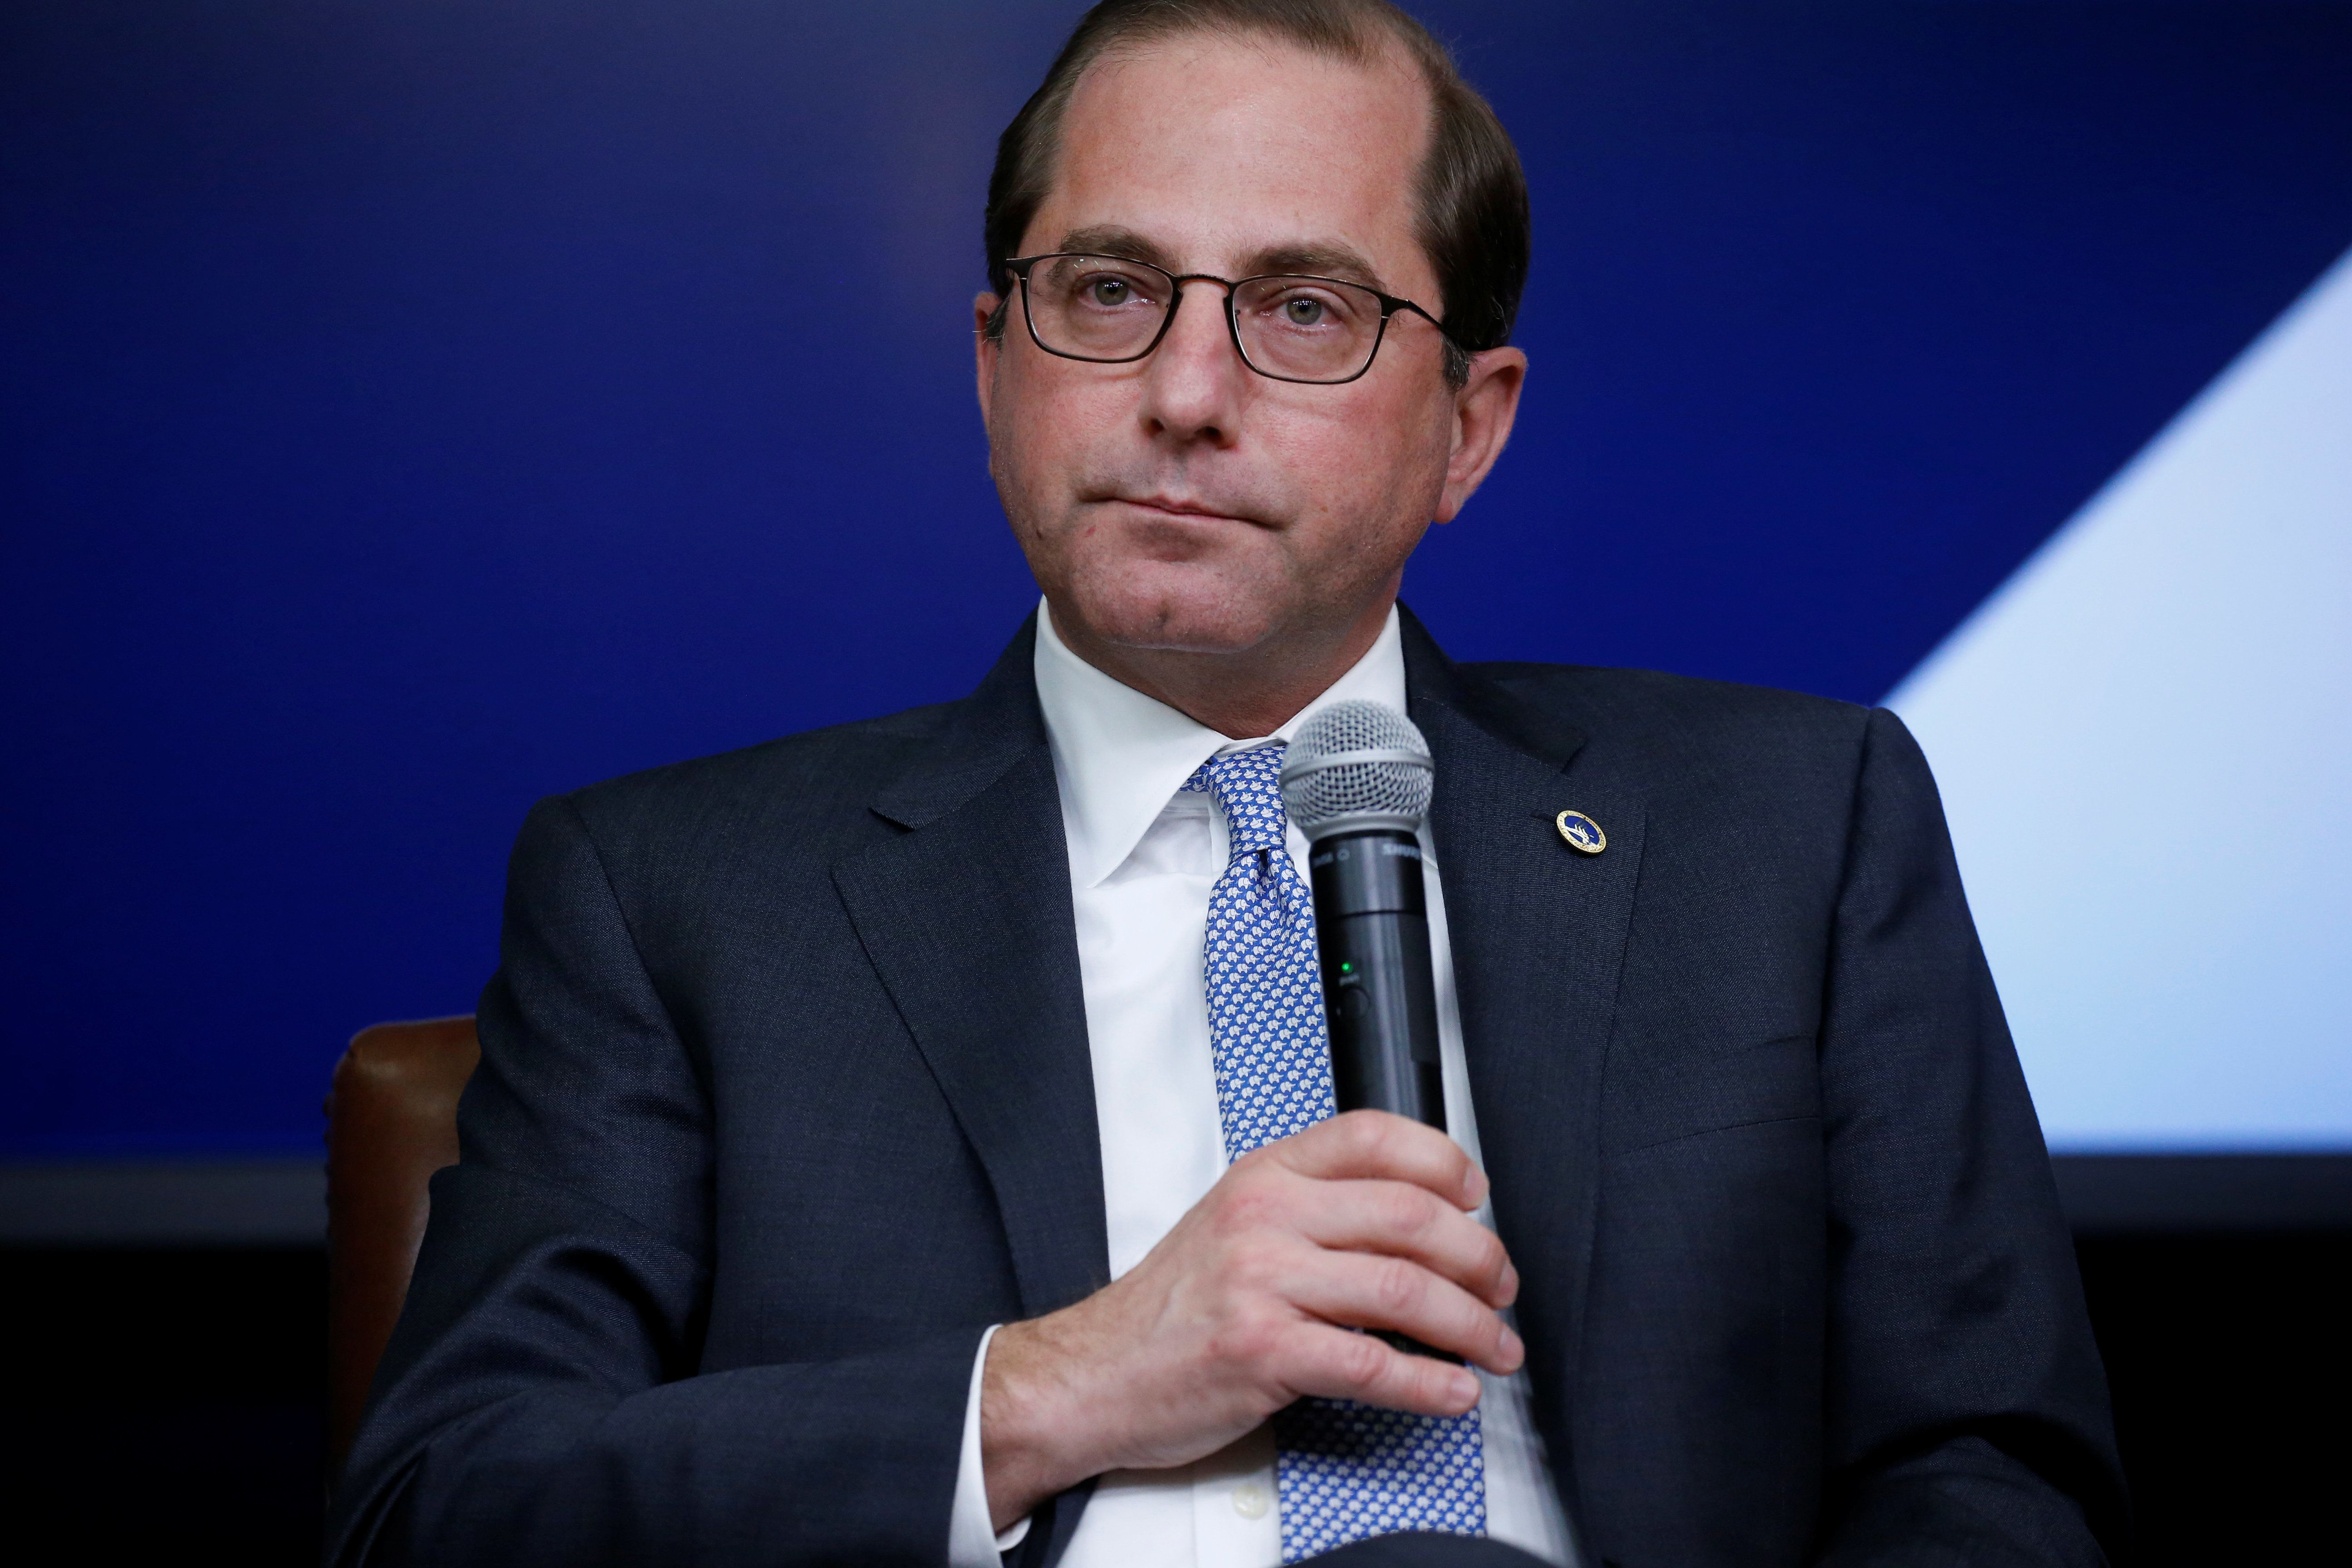 Health and Human Services Secretary Alex Azar participates in a forum called Generation Next at the Eisenhower Executive Office Building in Washington, U.S., March 22, 2018. REUTERS/Leah Millis